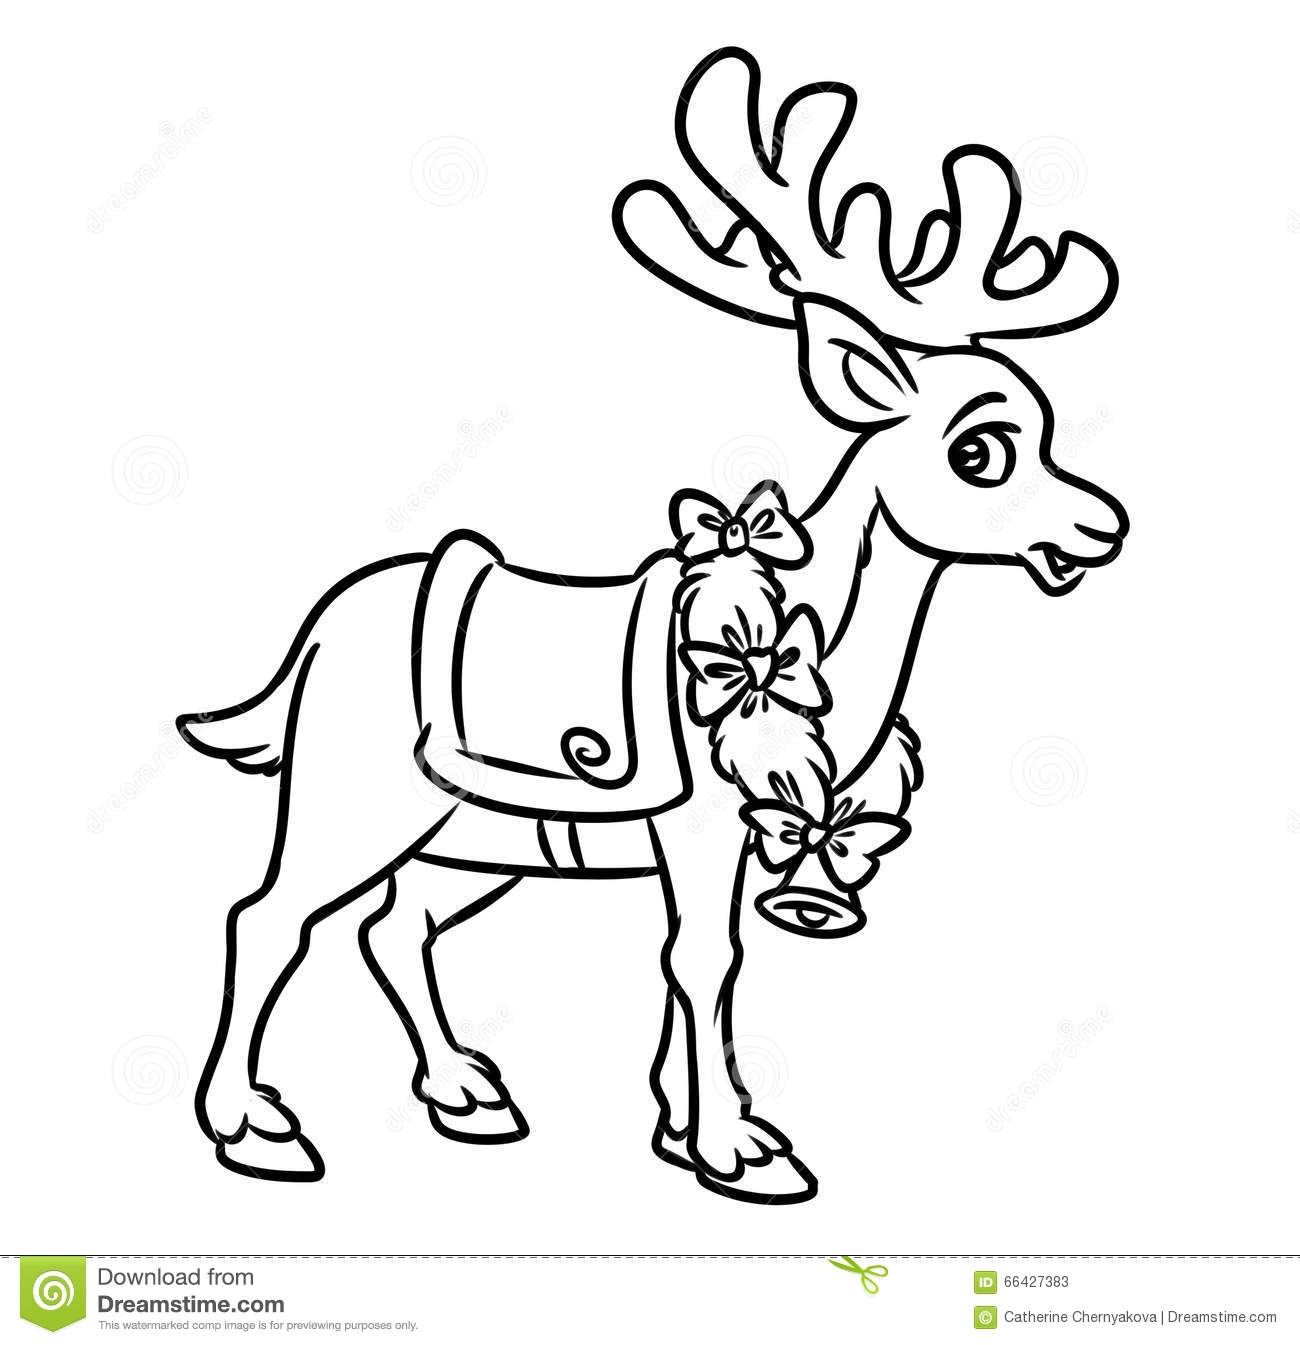 20 Santa and Reindeer Coloring Pages Collections | FREE COLORING PAGES